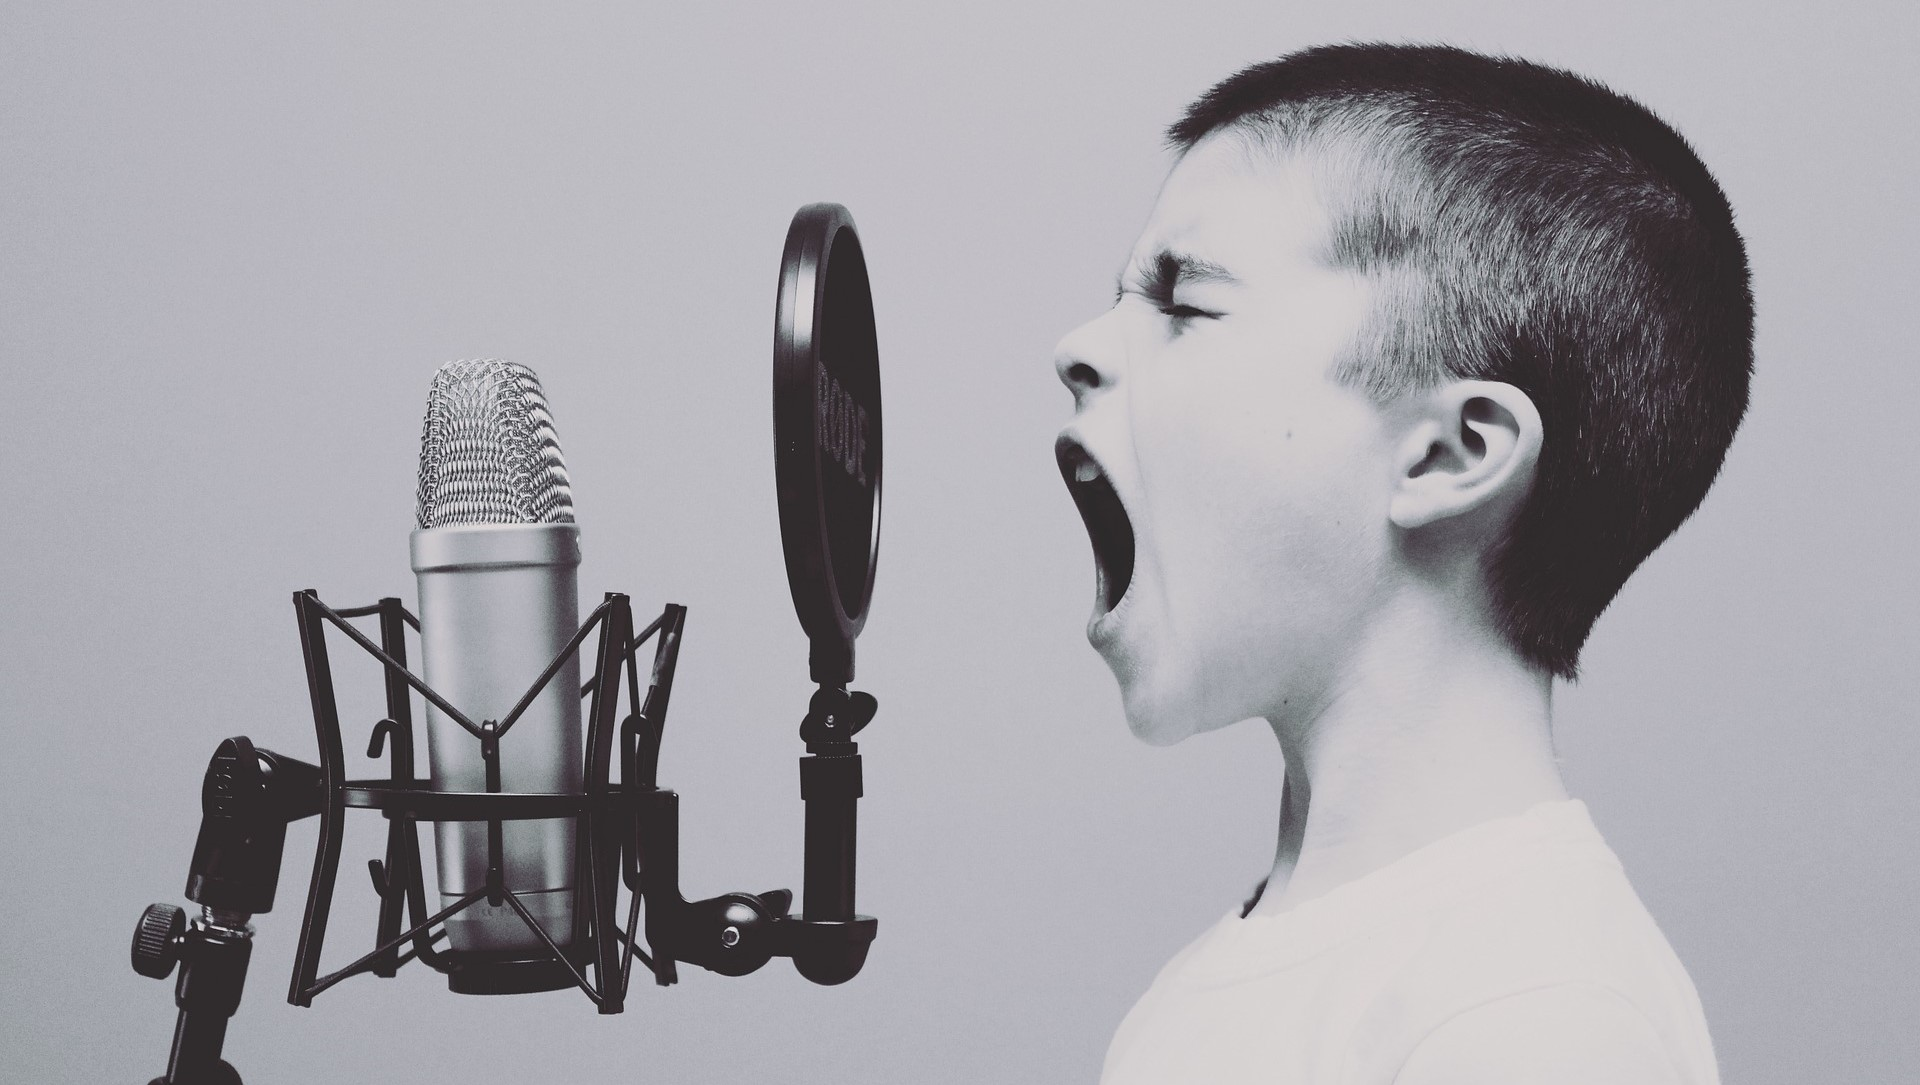 Singing makes use of our vocal folds, which are barely as big as a penny.